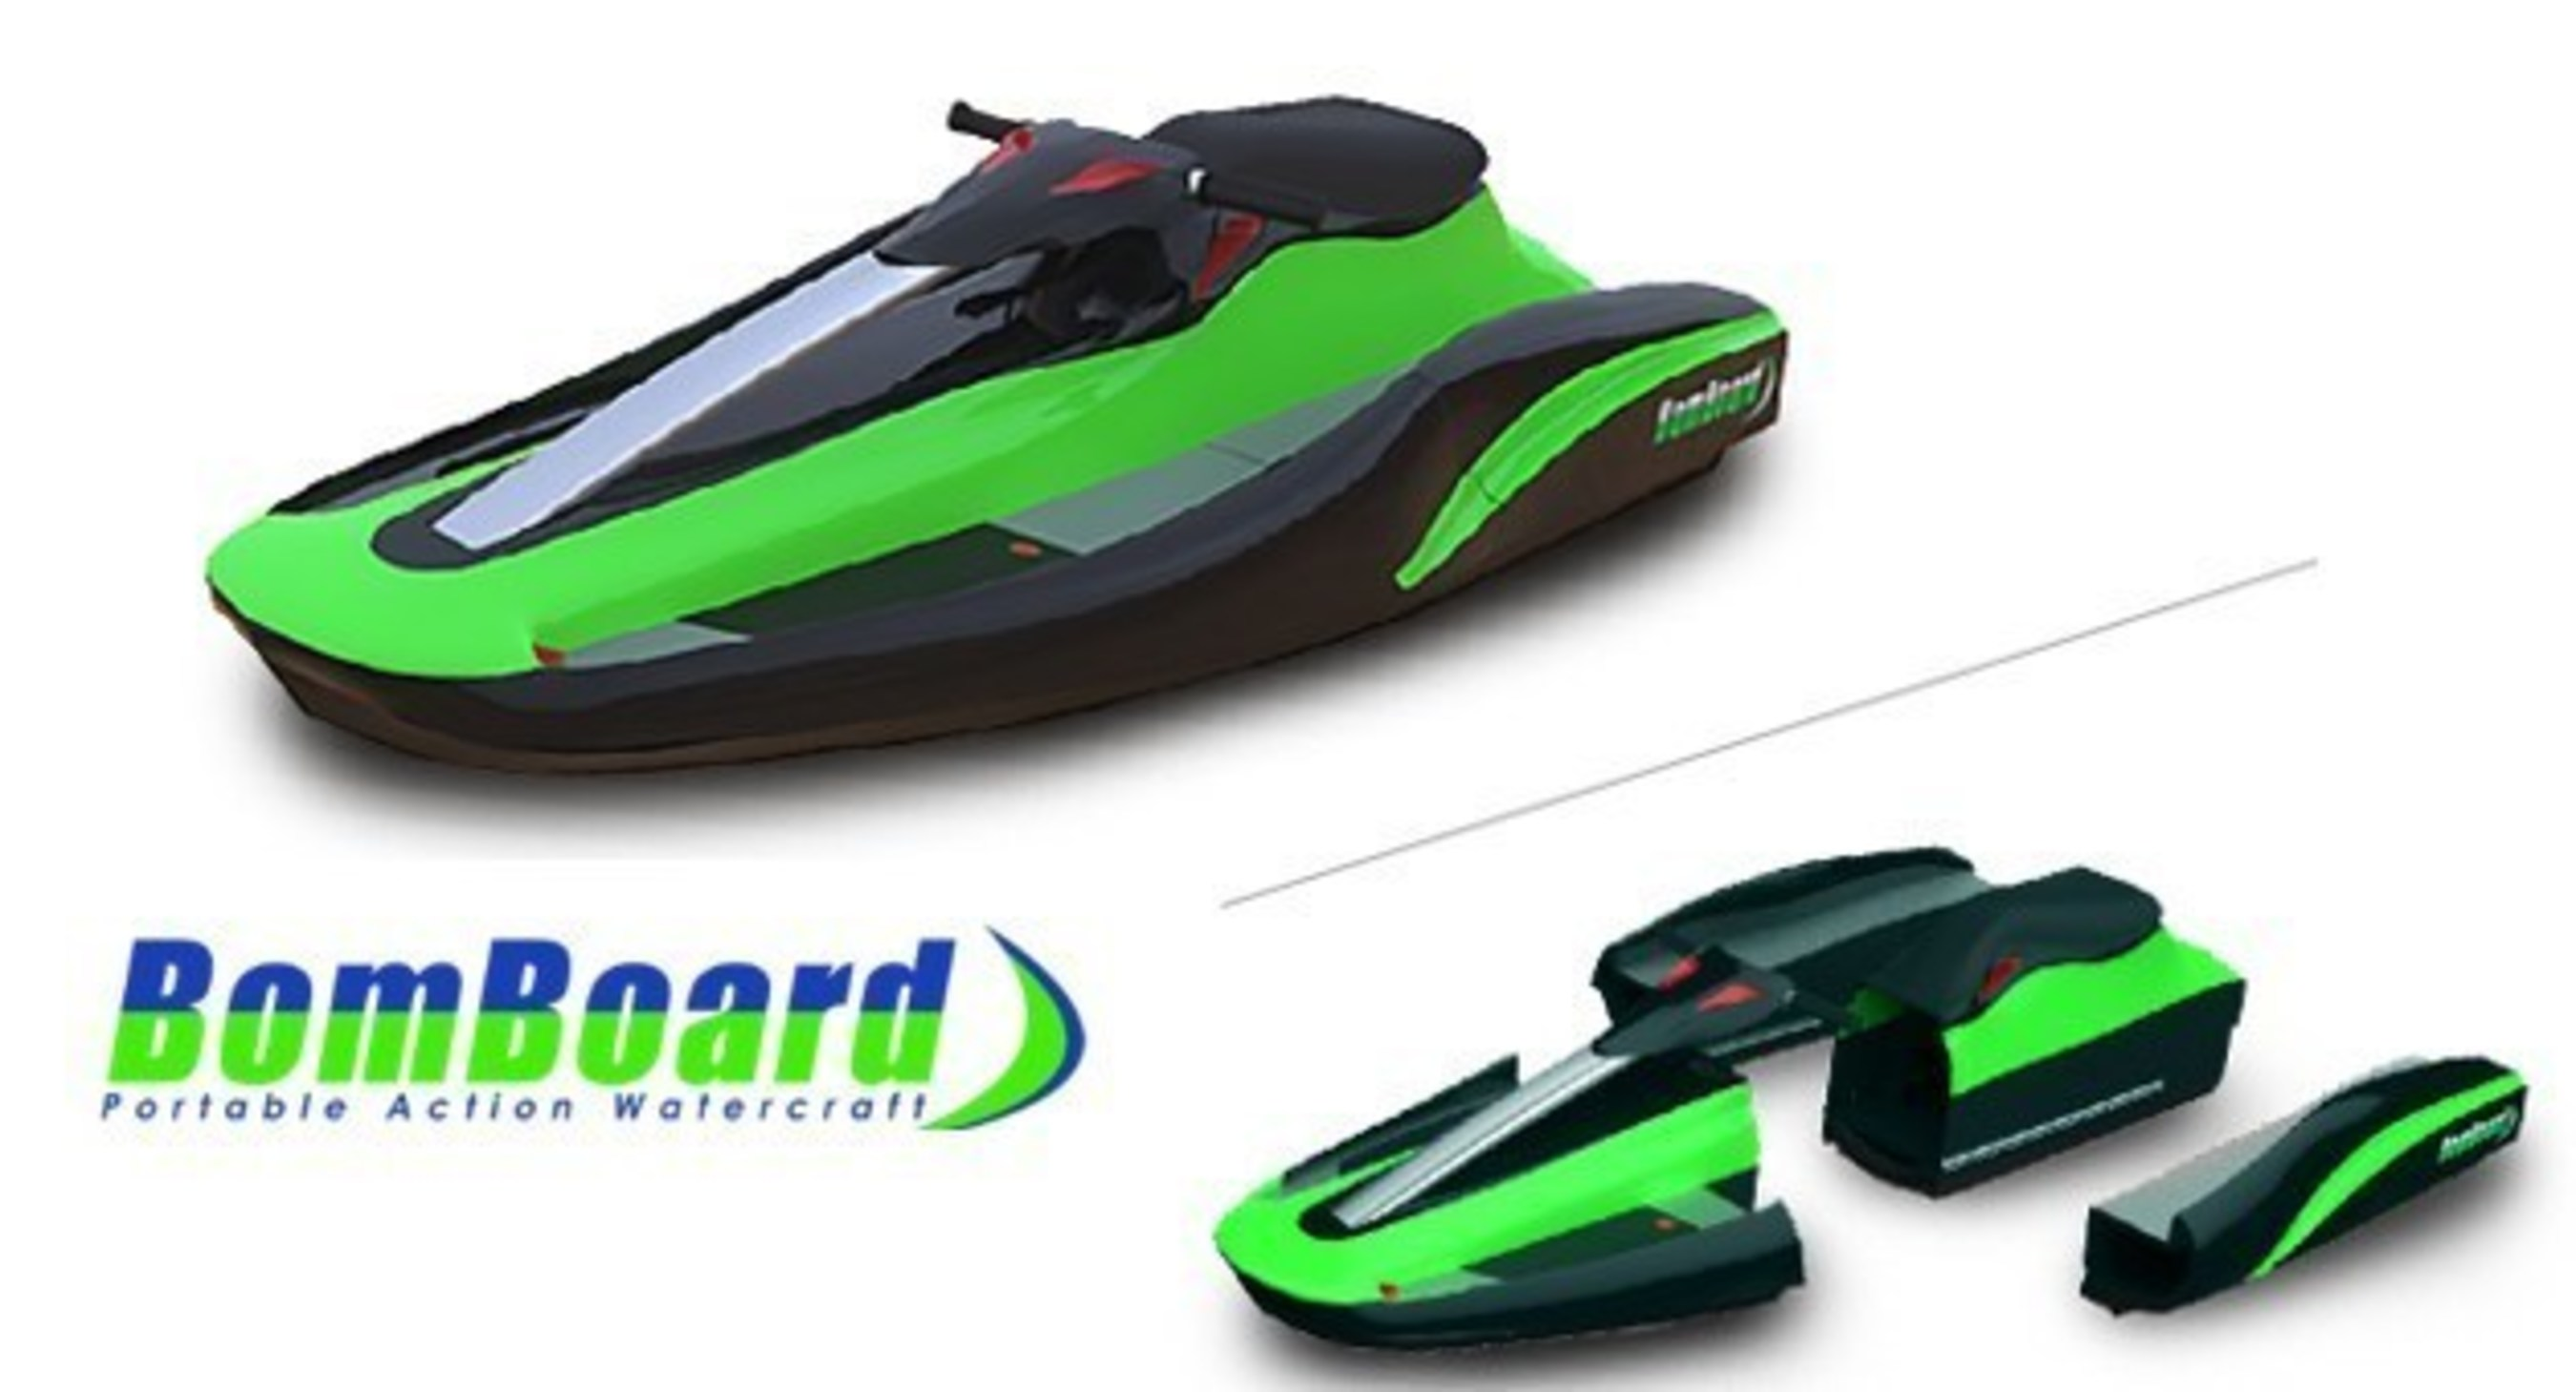 World's First And Only Modular, High-Tech Personal Watercraft Maker, Bomboard(TM), To Use Crowdfunding To Raise Big $$$